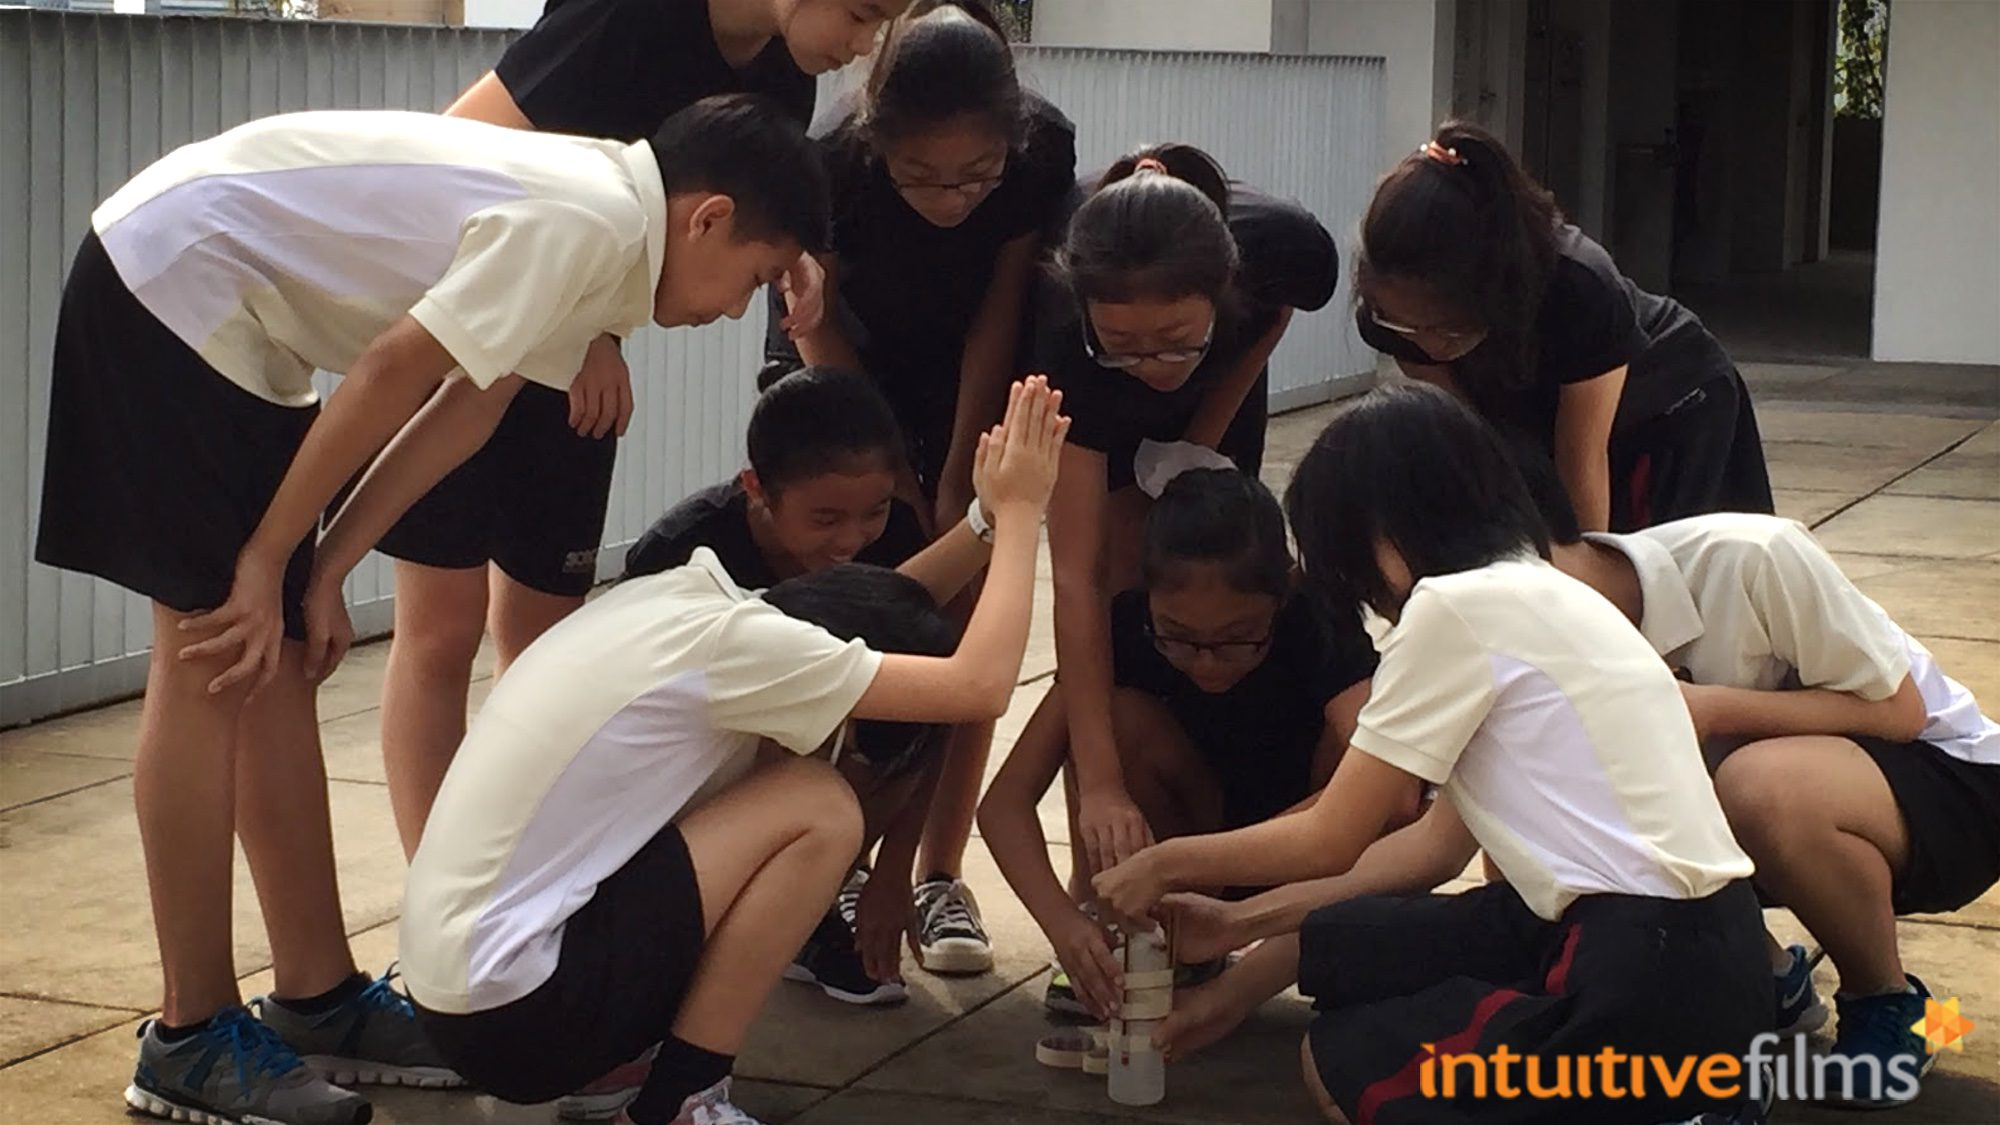 Sending rockets into the sky at the SOTA rooftop garden with the students, as part of their science classes.